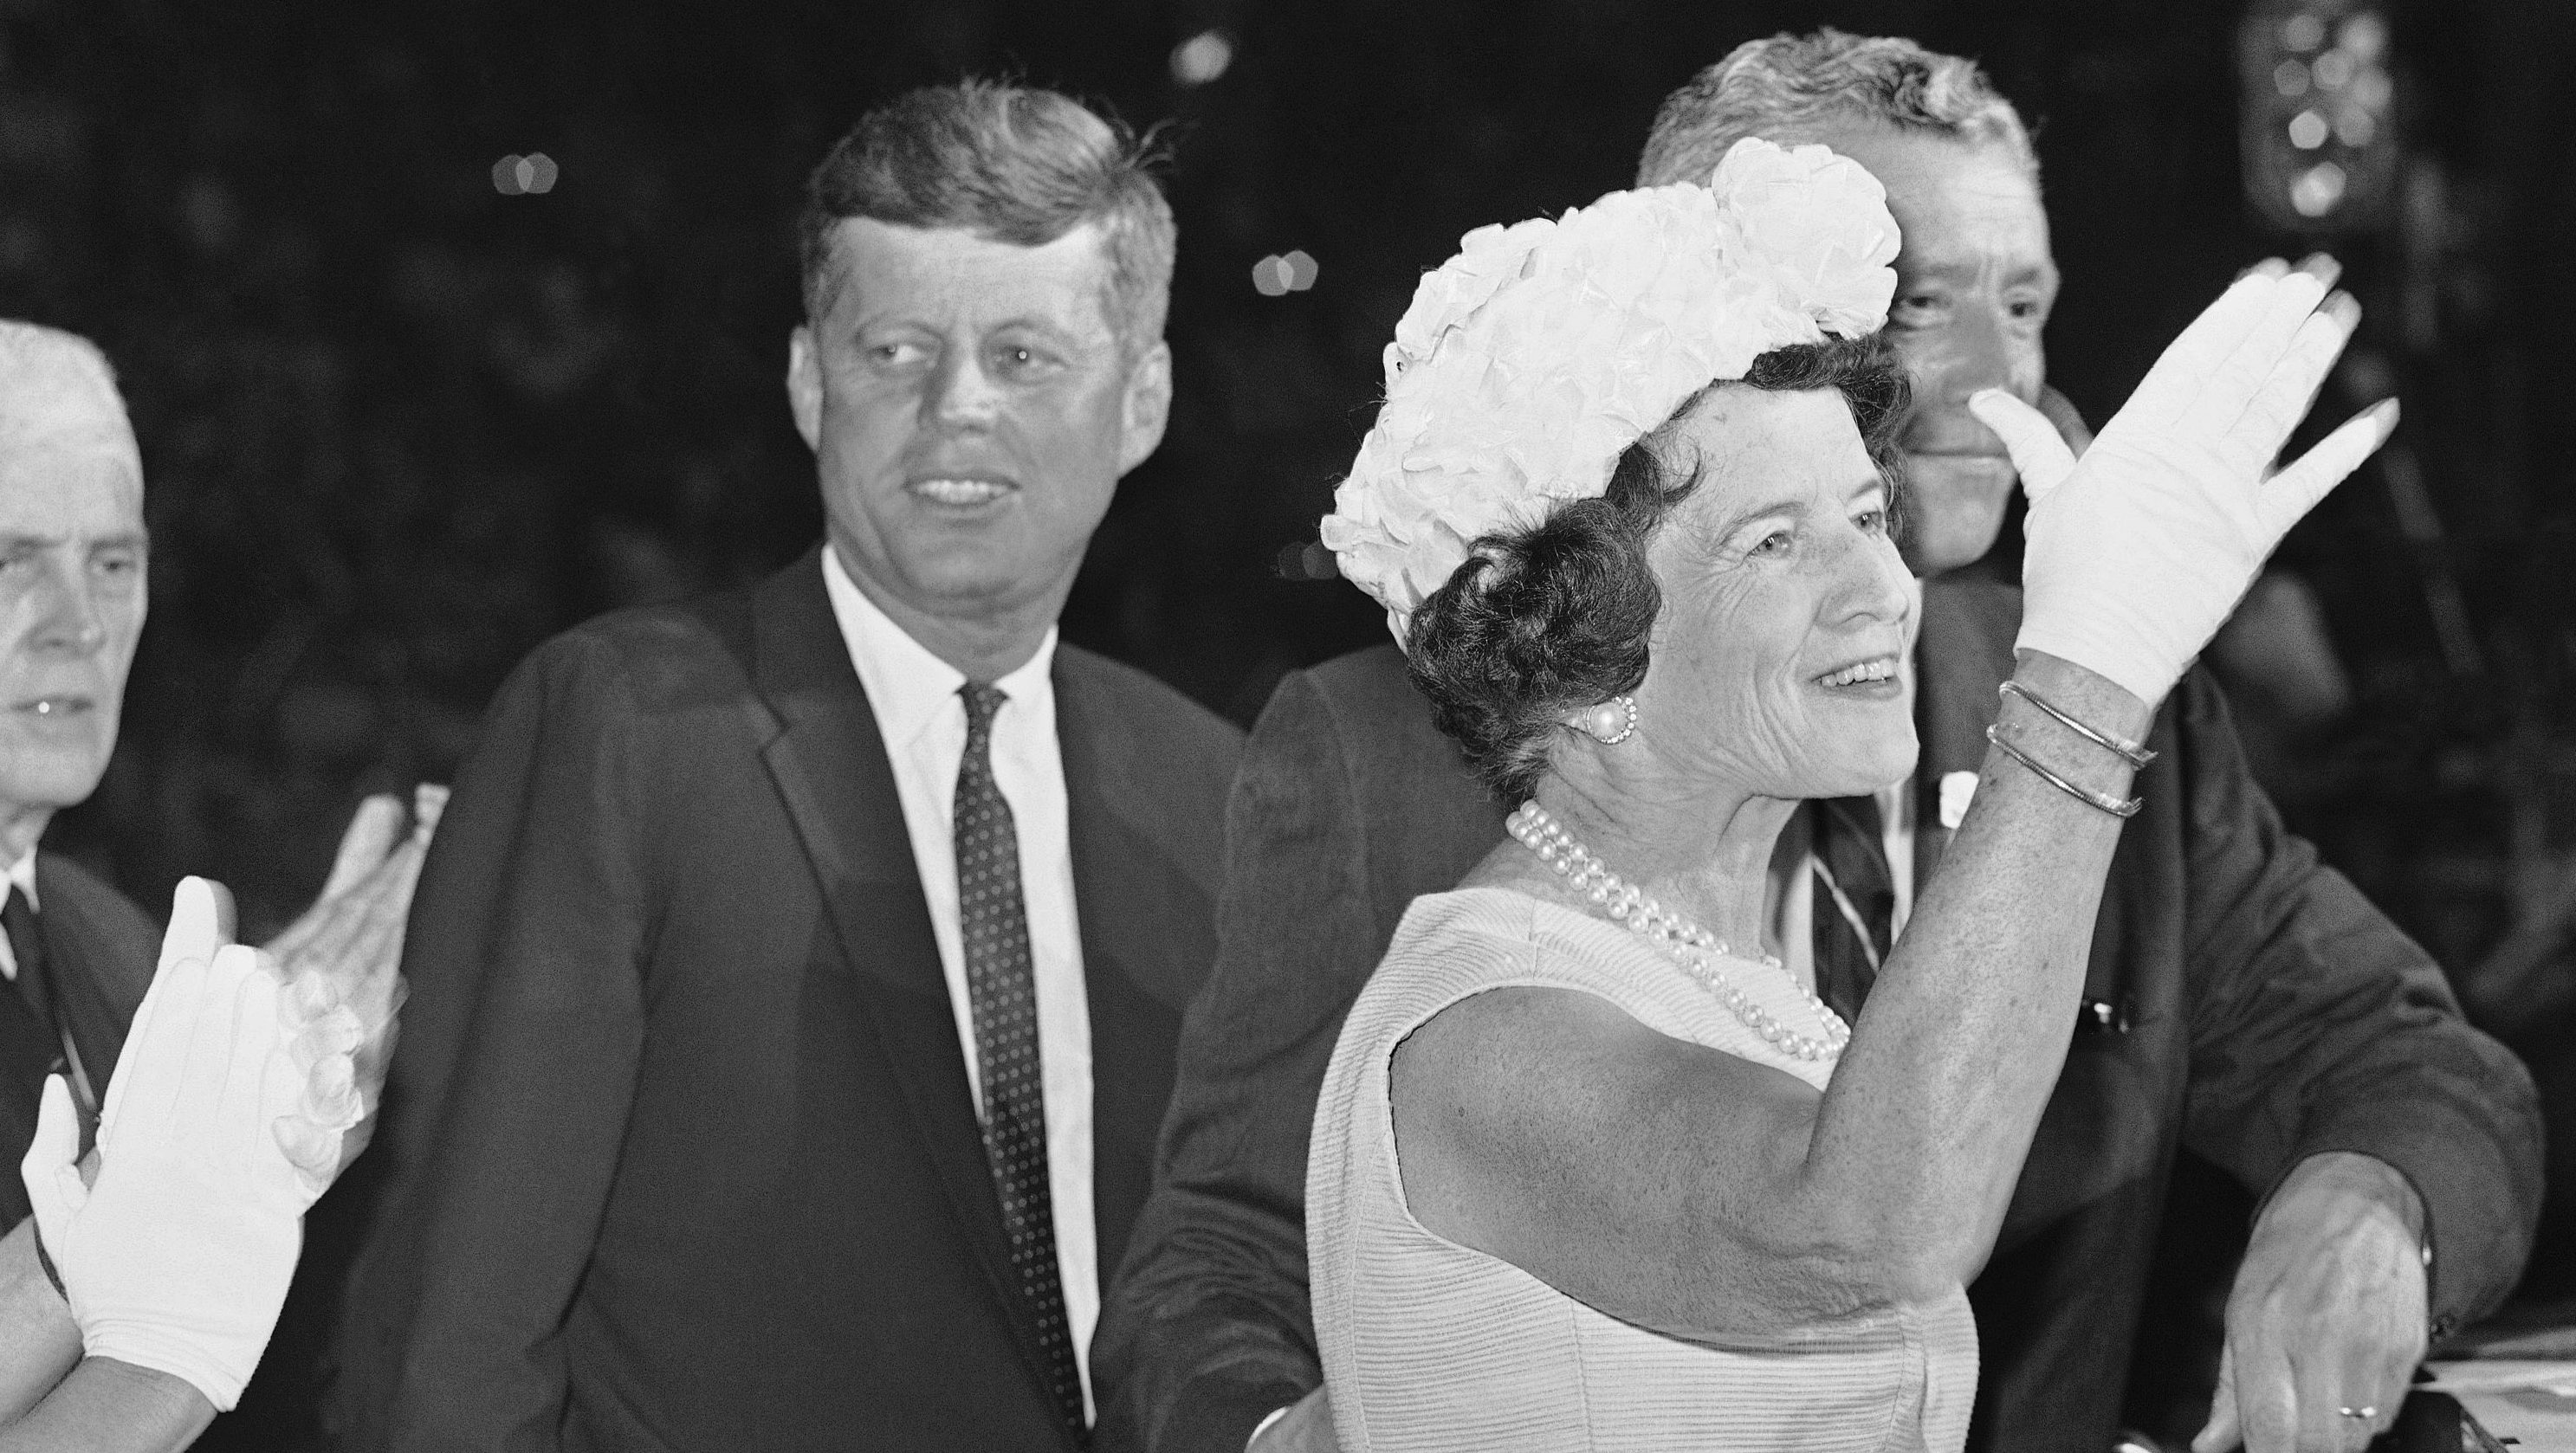 Mrs. Joseph P. Kennedy waves to delegates at the democratic national convention in Los Angeles at night on July 13, 1960 after she was introduced with her son, Sen. John F. Kennedy, their nominee fort the presidency. (AP Photo)